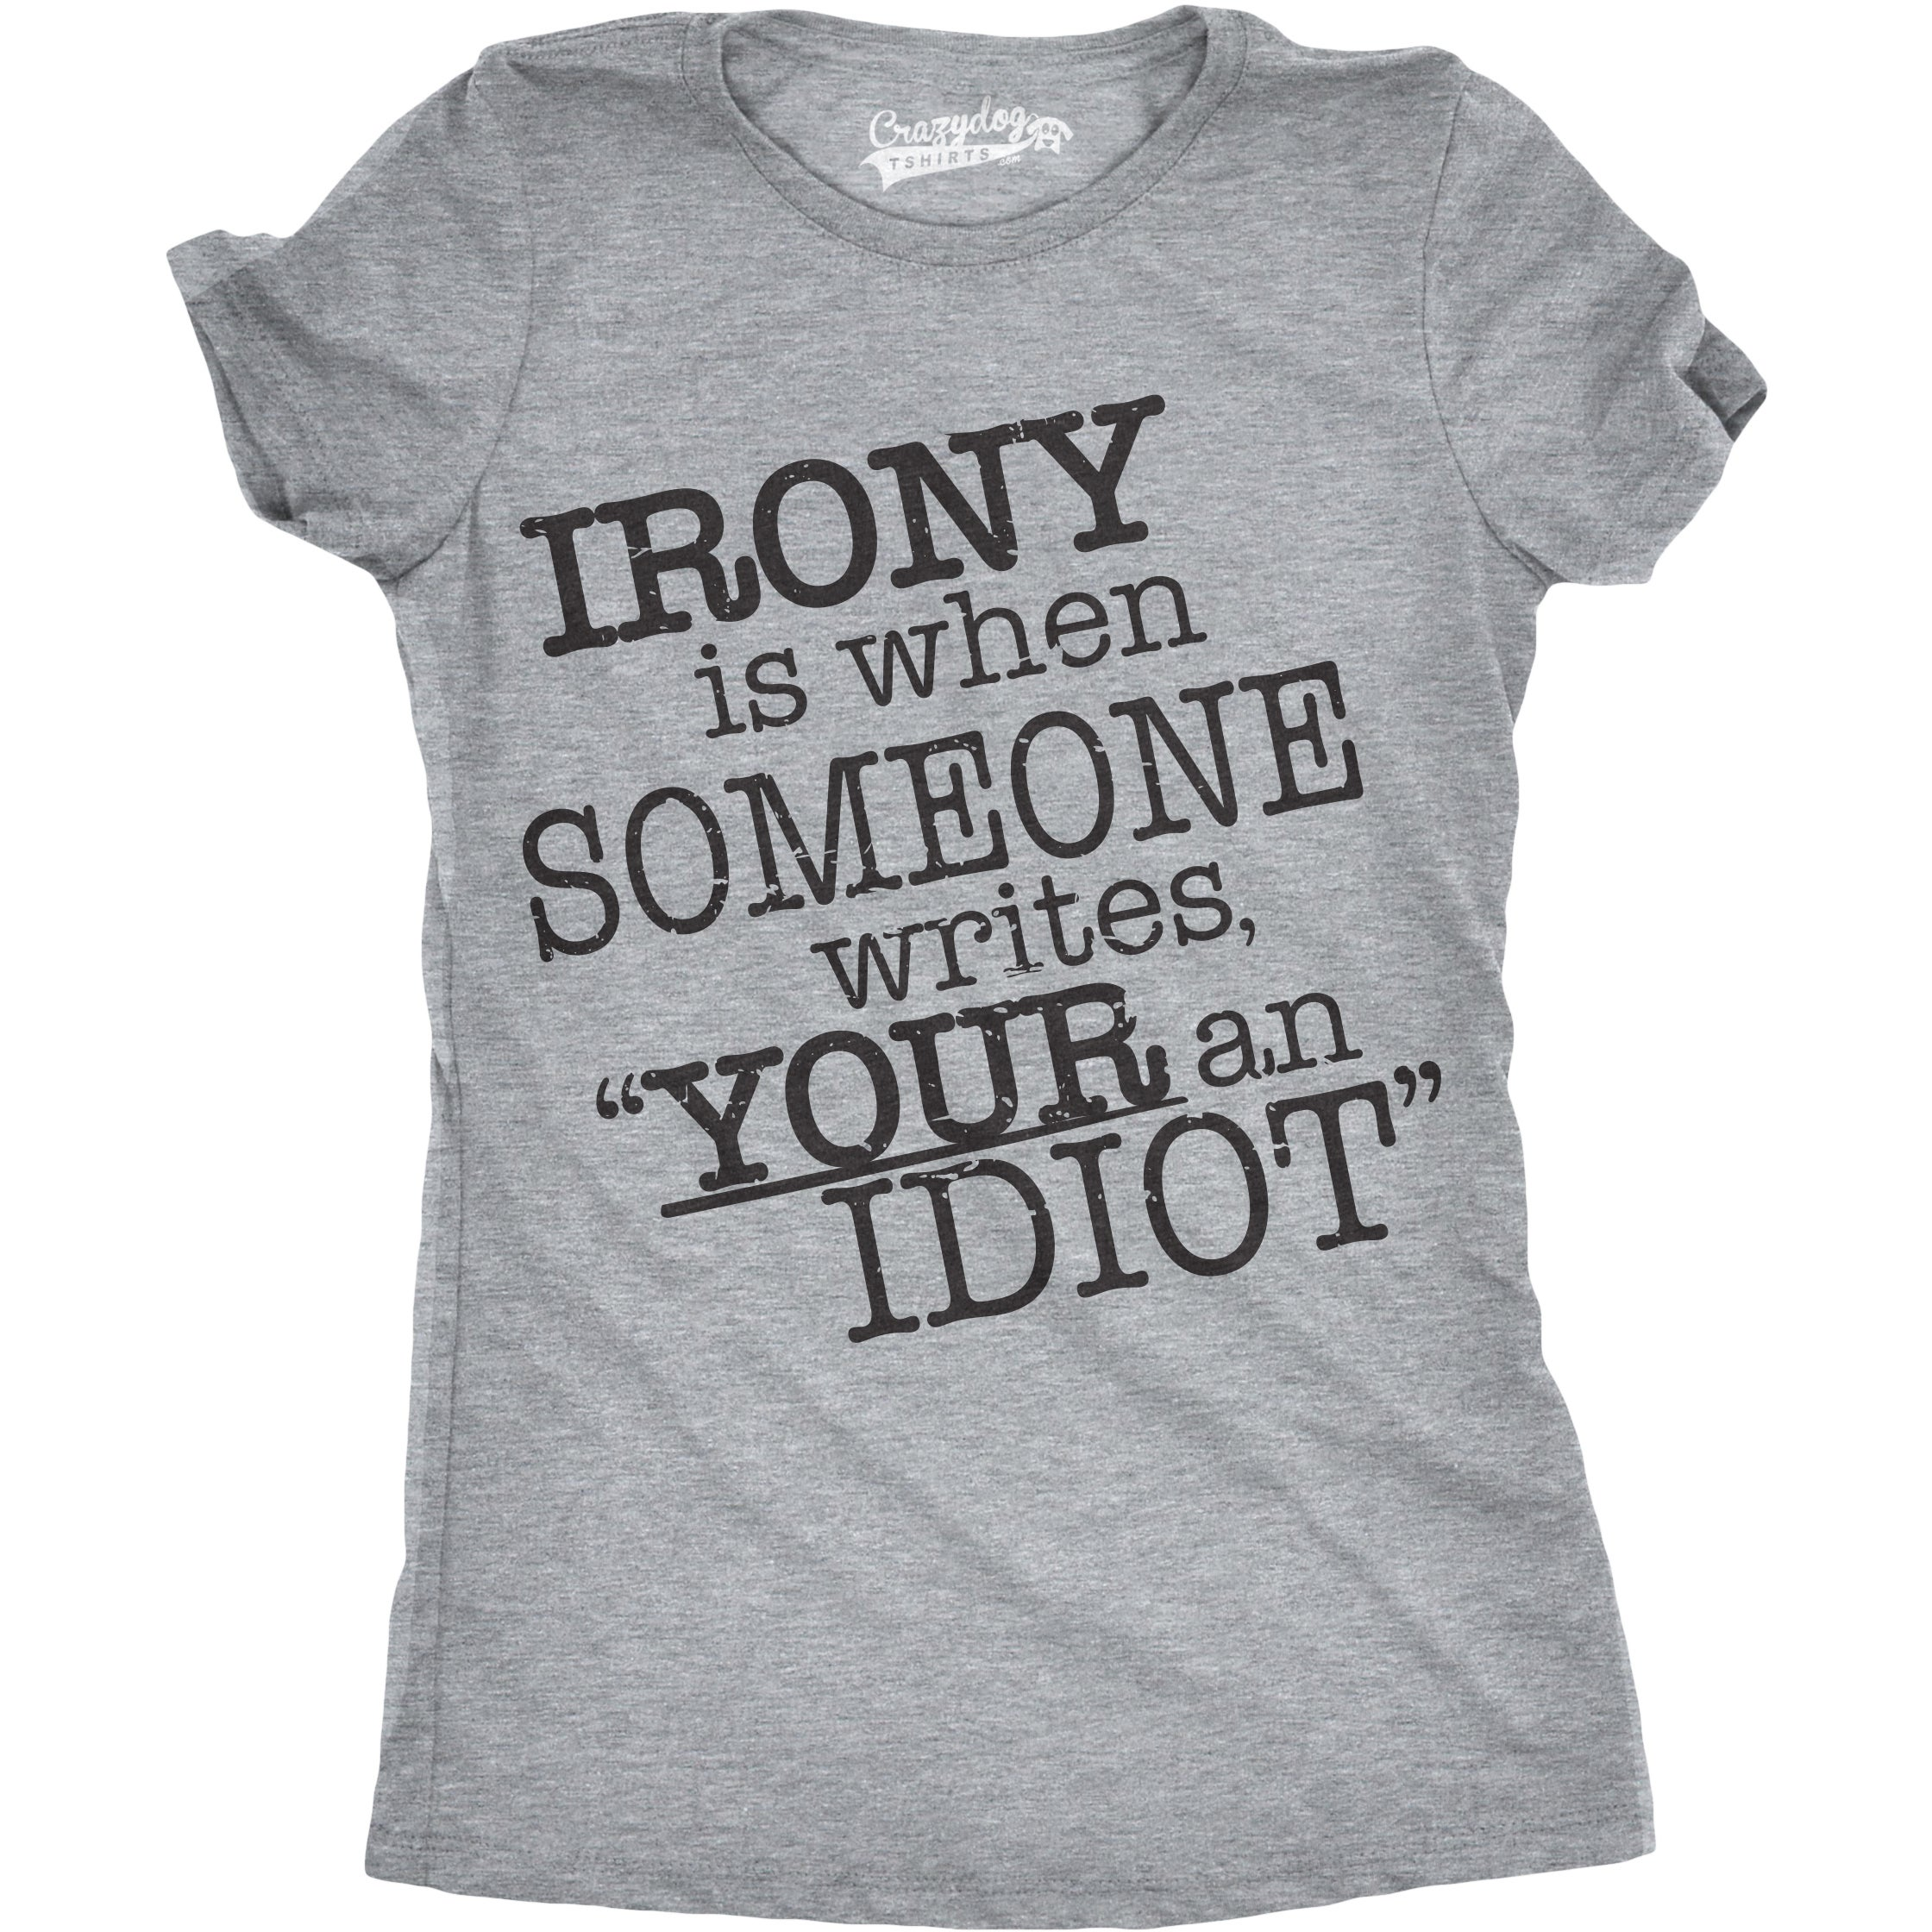 d7be982b Shop Women's Your An Idiot Irony T Shirt Funny Grammar Shirt Spelling Tee -  Free Shipping On Orders Over $45 - Overstock - 18654765